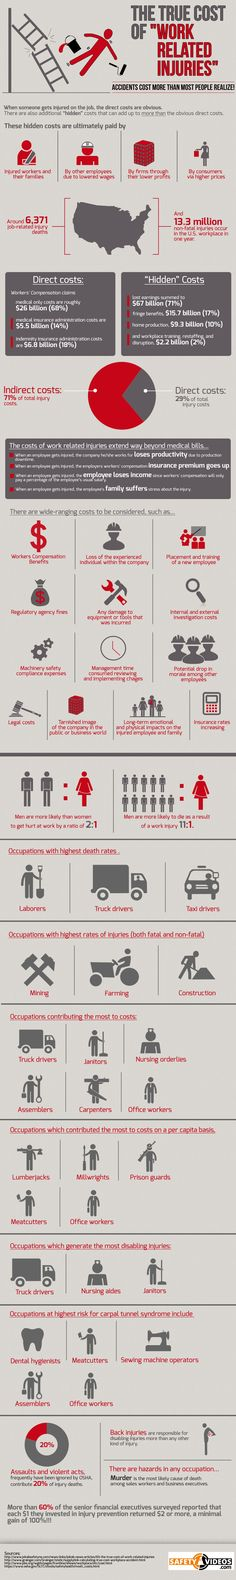 The True Cost Of Work Related Injuries – An infographic by the team at SafetyVideos.com